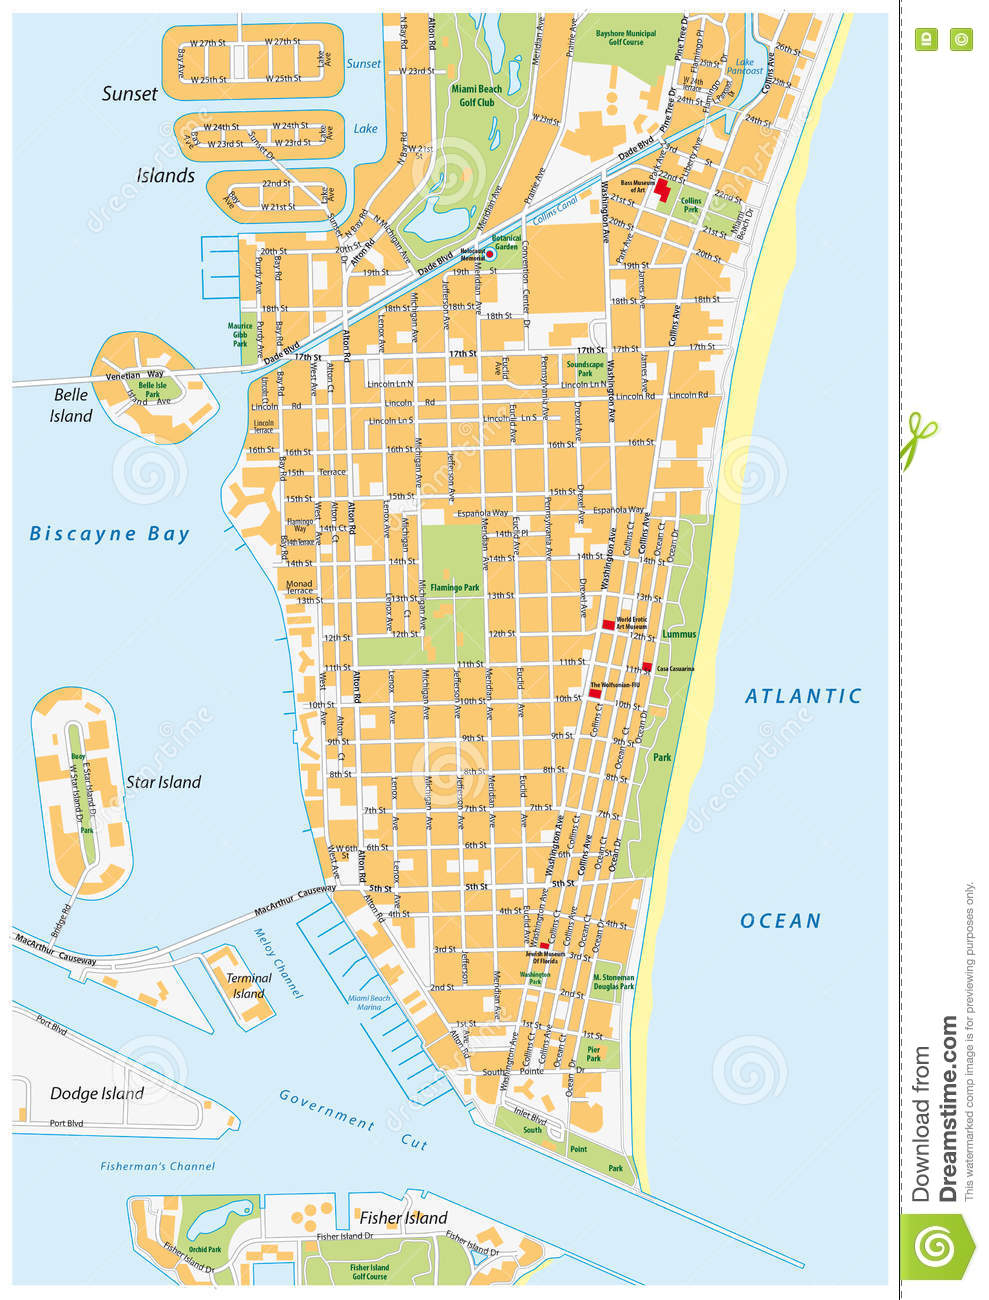 MiamiBeach Street Map Florida Stock Illustration Image - Florida map beach